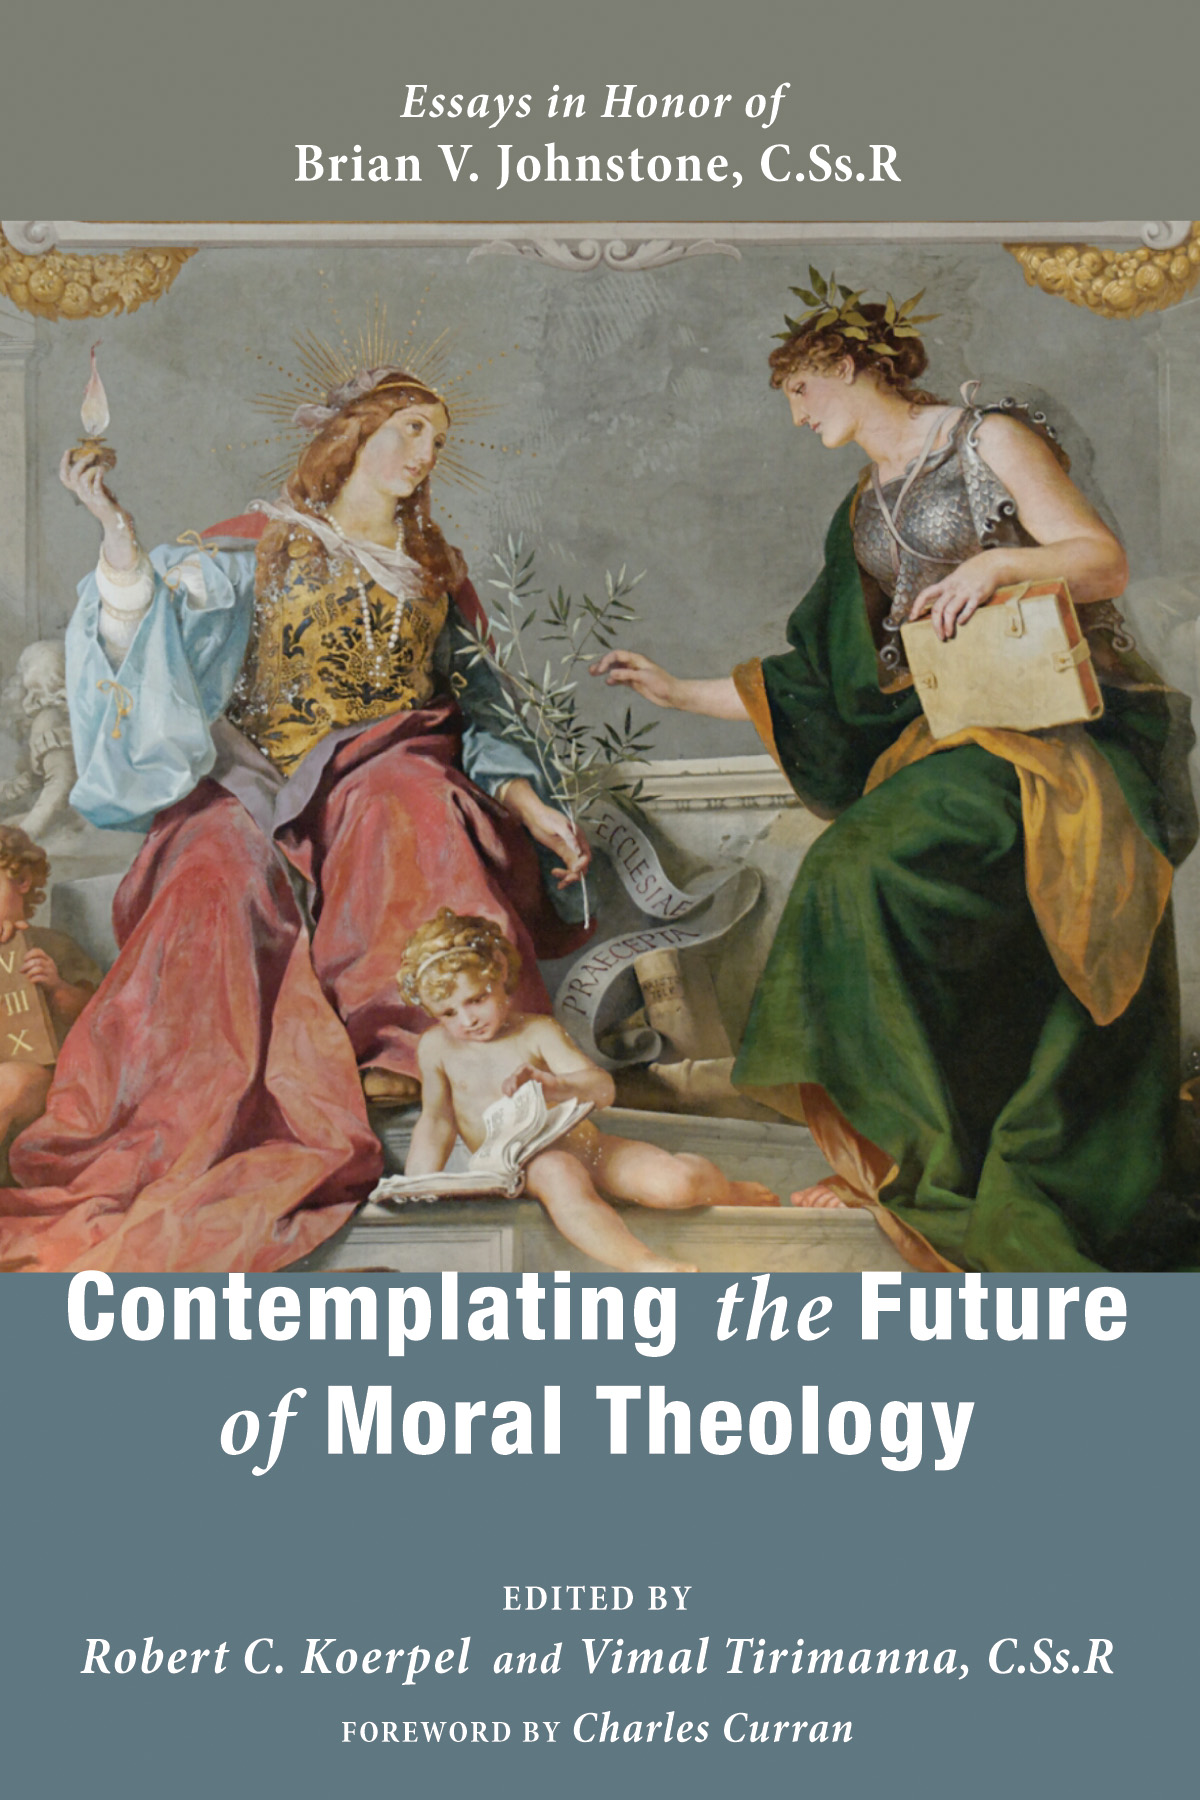 moral theology Toward a moral stance which respects, enhances and promotes right relations it follows then that failure to respond, fdure to  154 moral theology sin and .